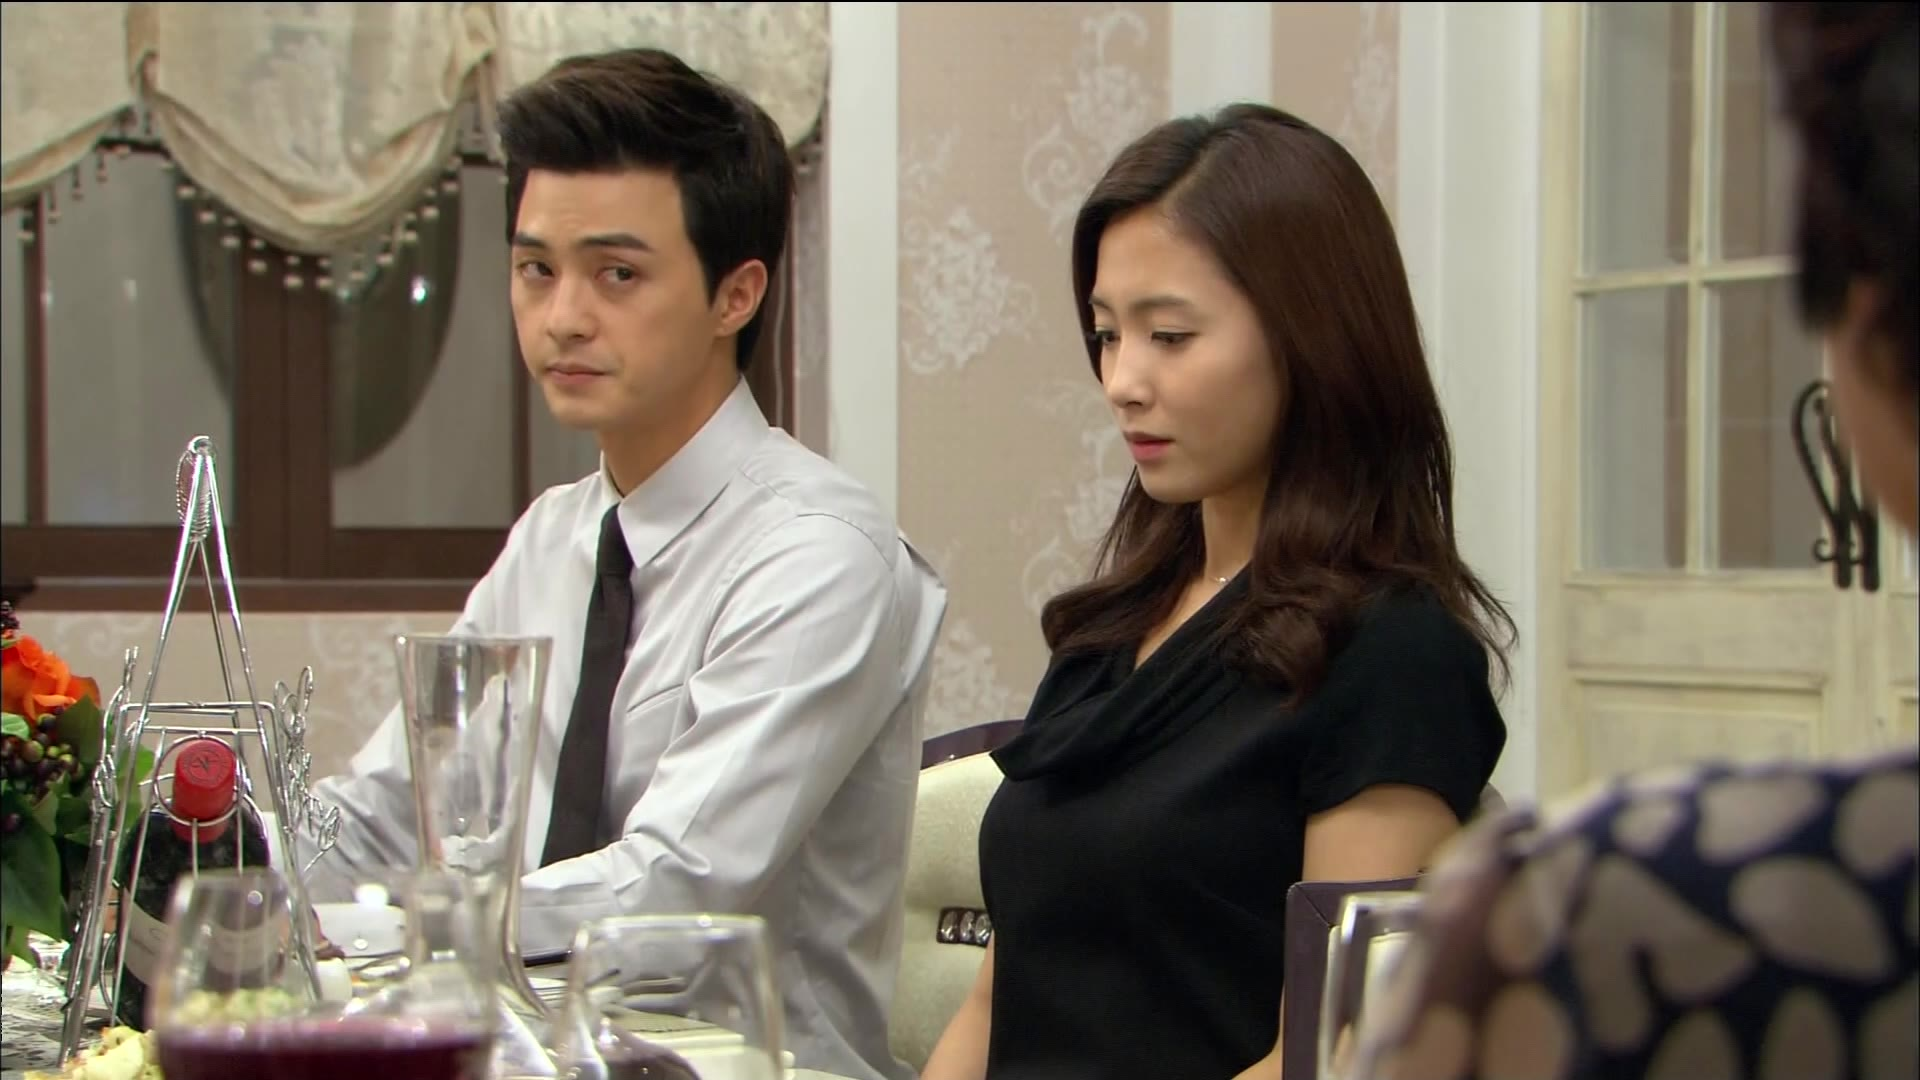 Goddess of Marriage Episode 3